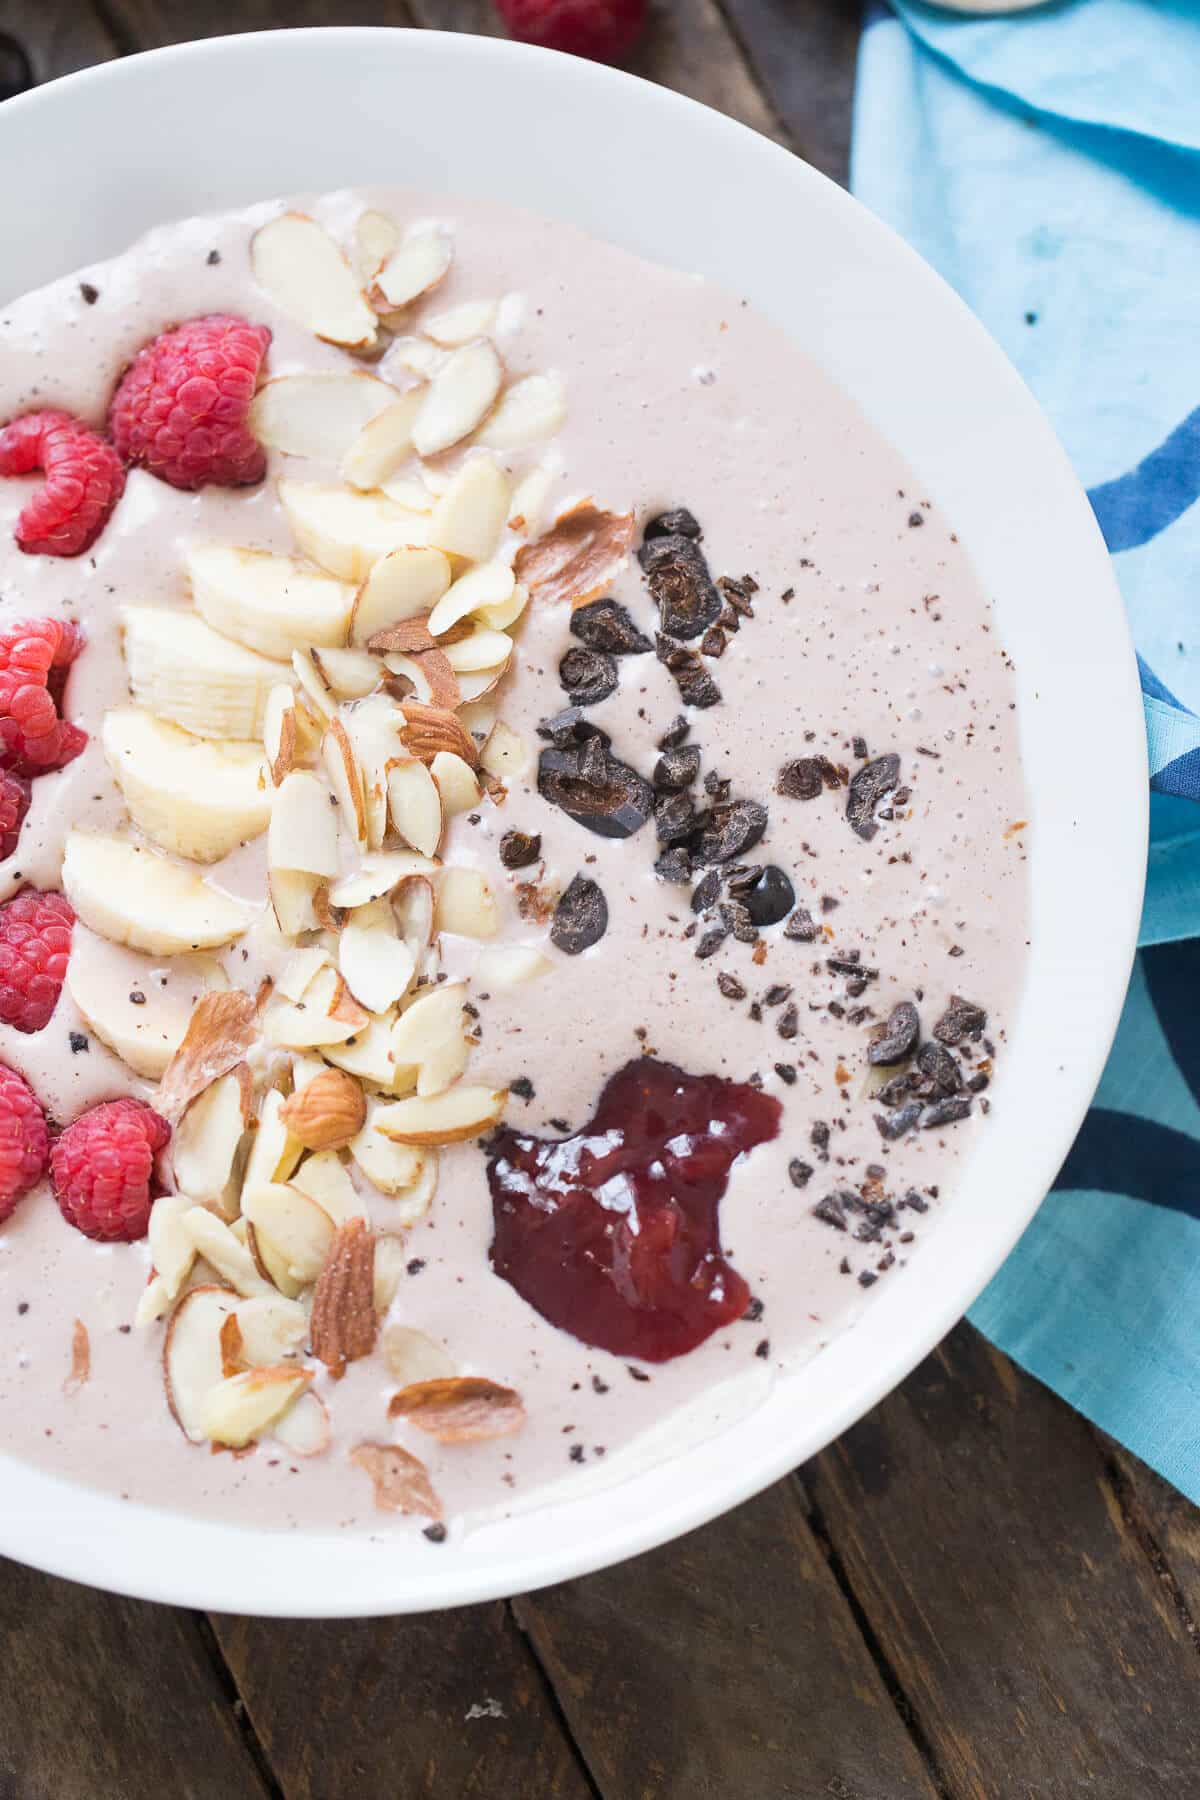 This smoothie bowl is a great way to get going in the mornings! Fresh fruit and a hint of mocha make this bowl taste amazing!